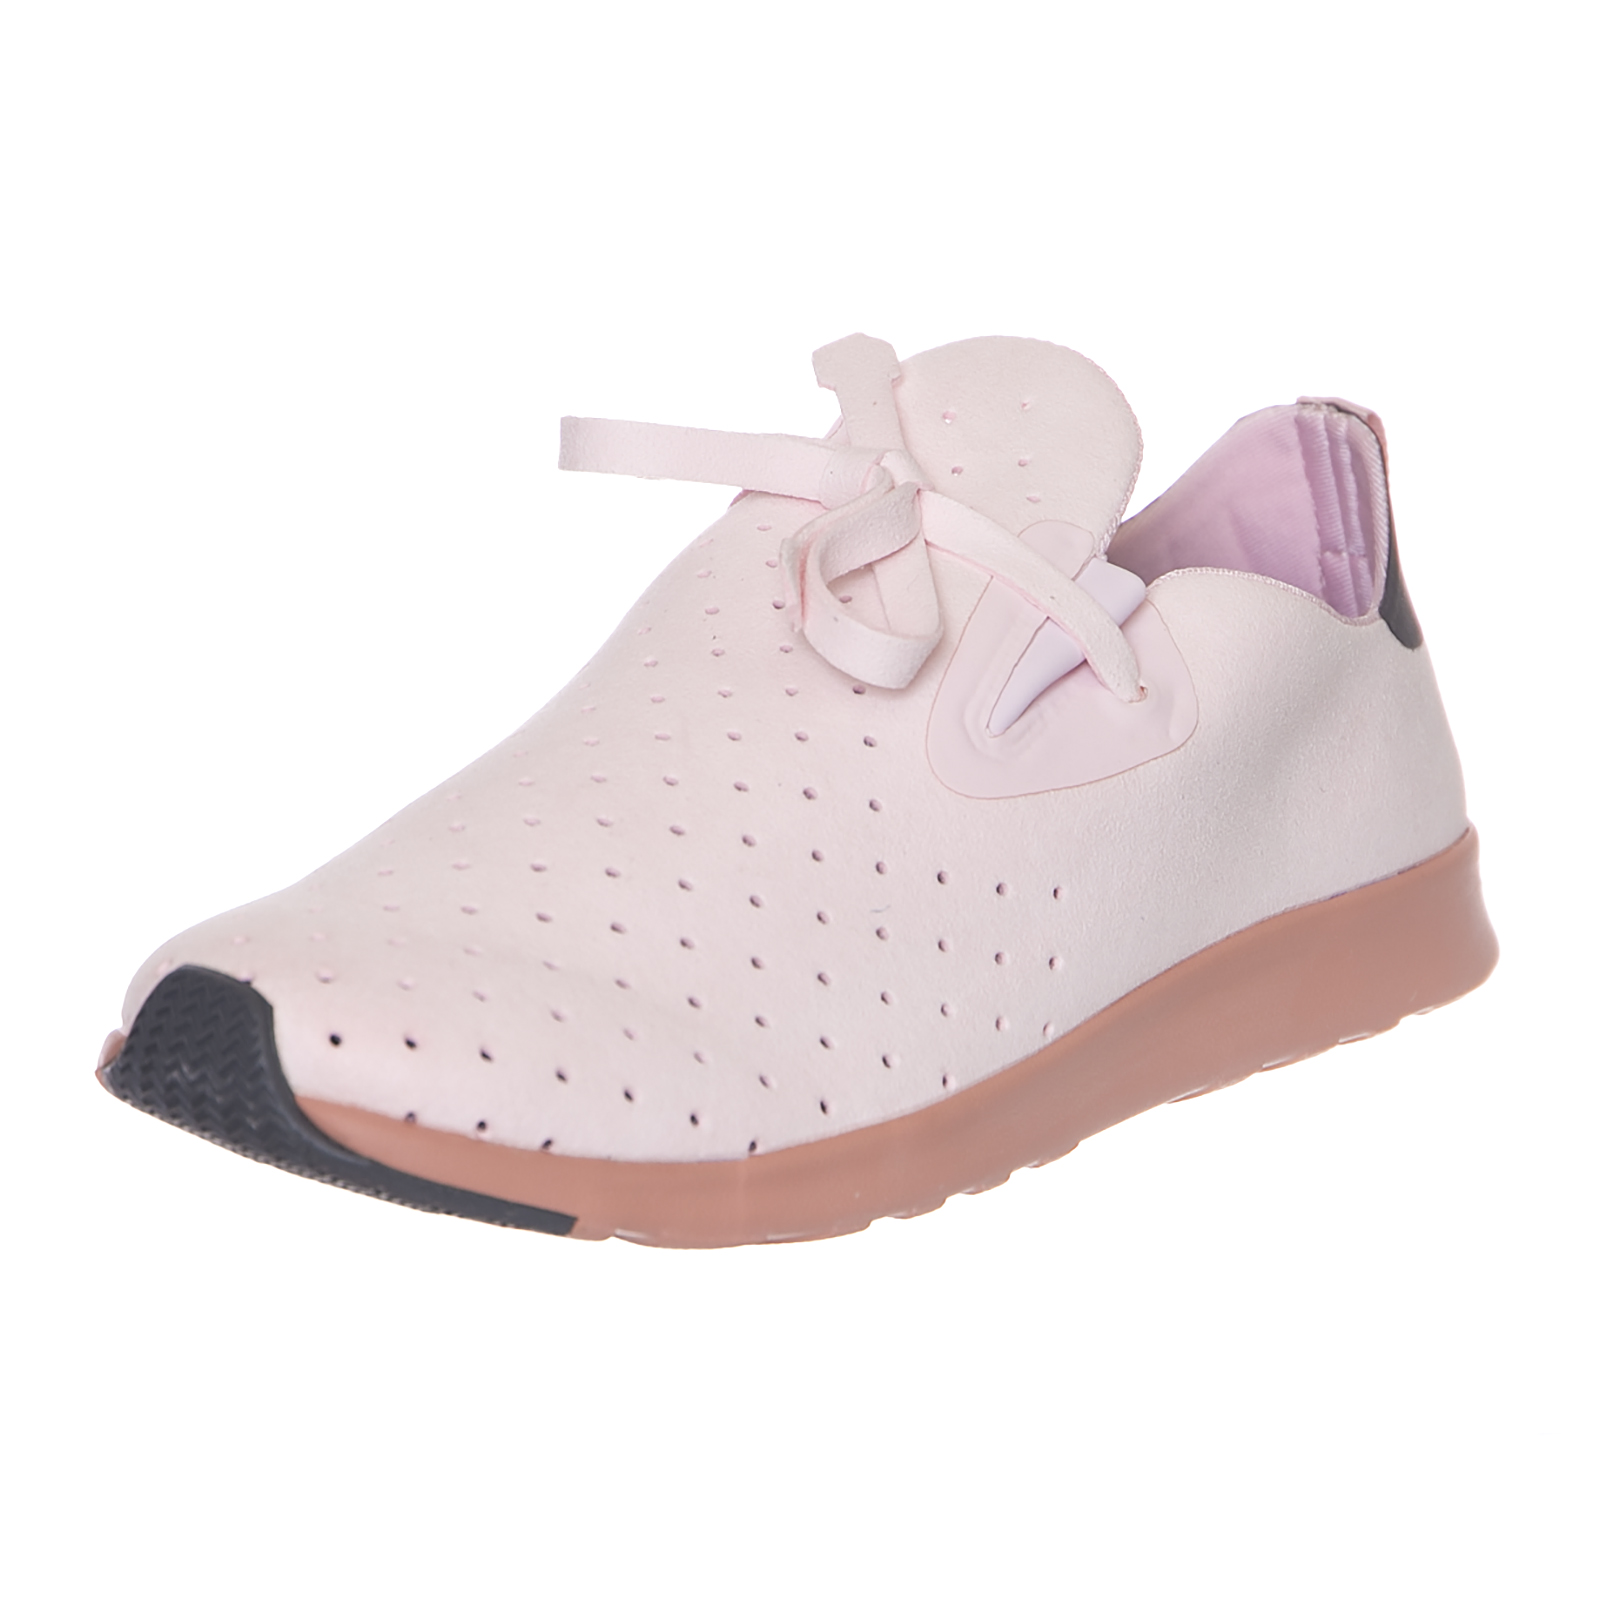 Native Sneakers Apollo Moc Milk Pink   Grey pink